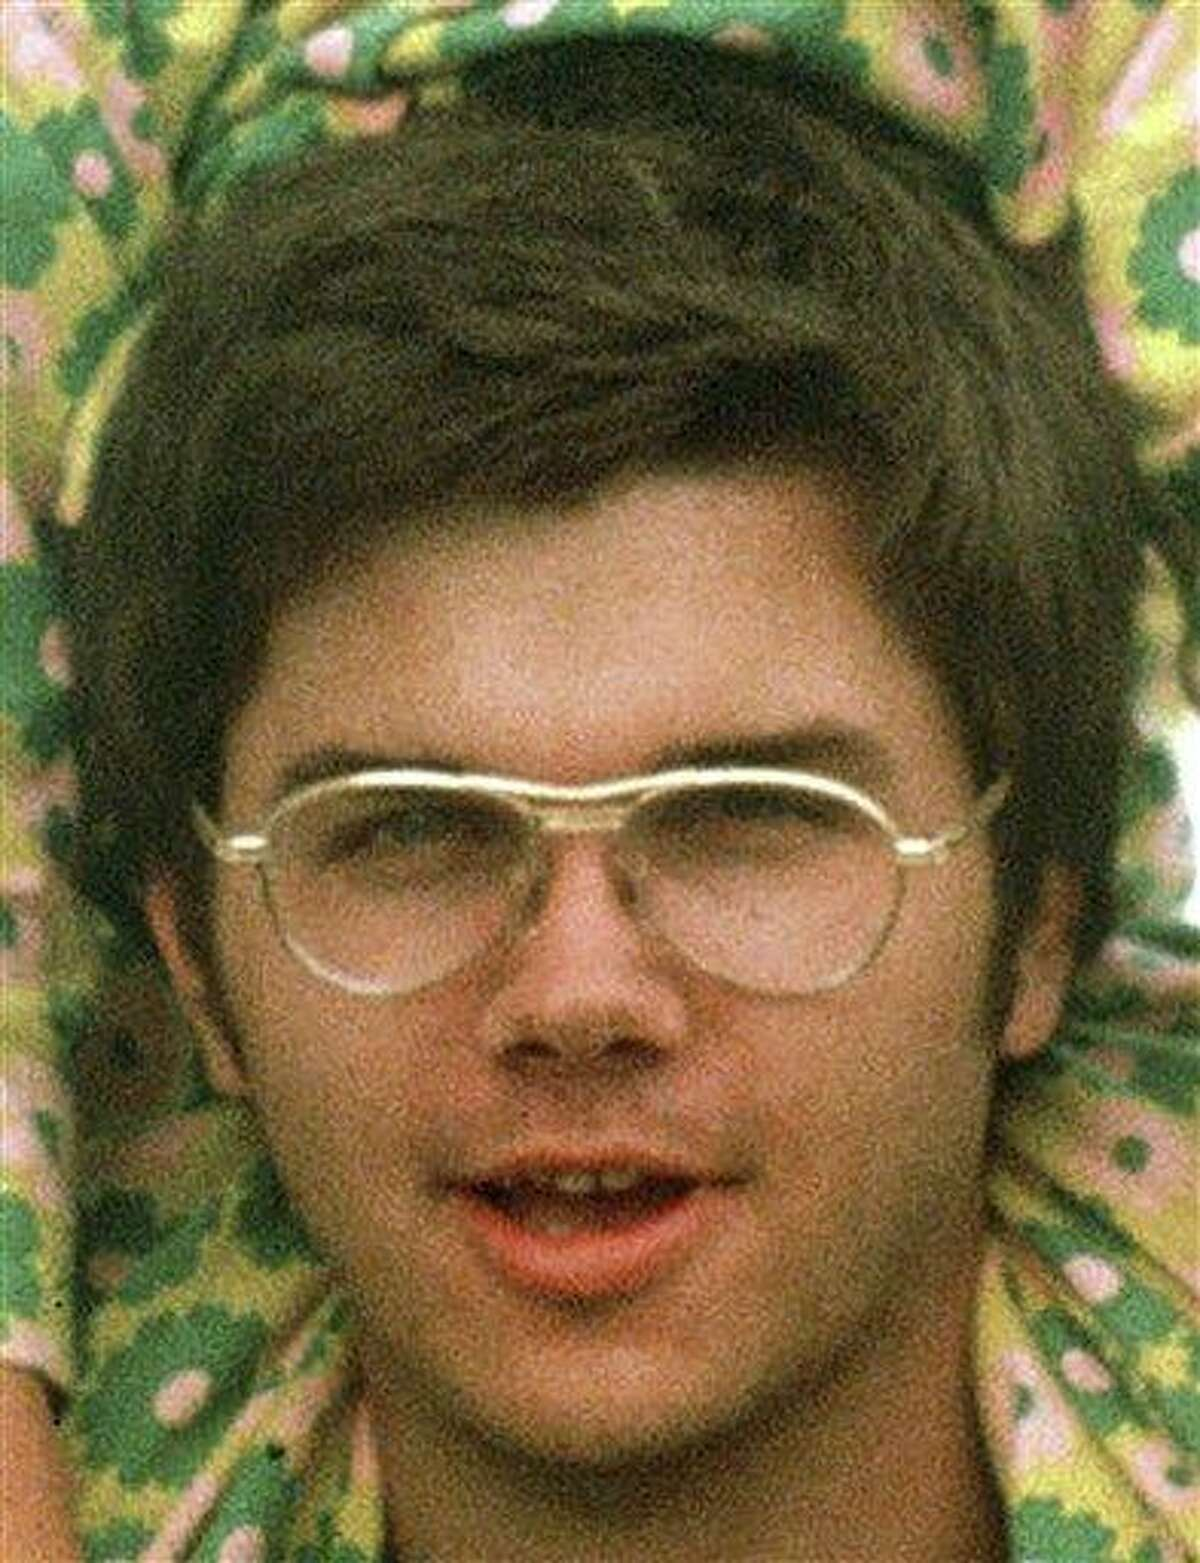 In this 1975 file photo, Mark David Chapman is seen at Fort Chaffee near Fort Smith, Ark. Associated Press